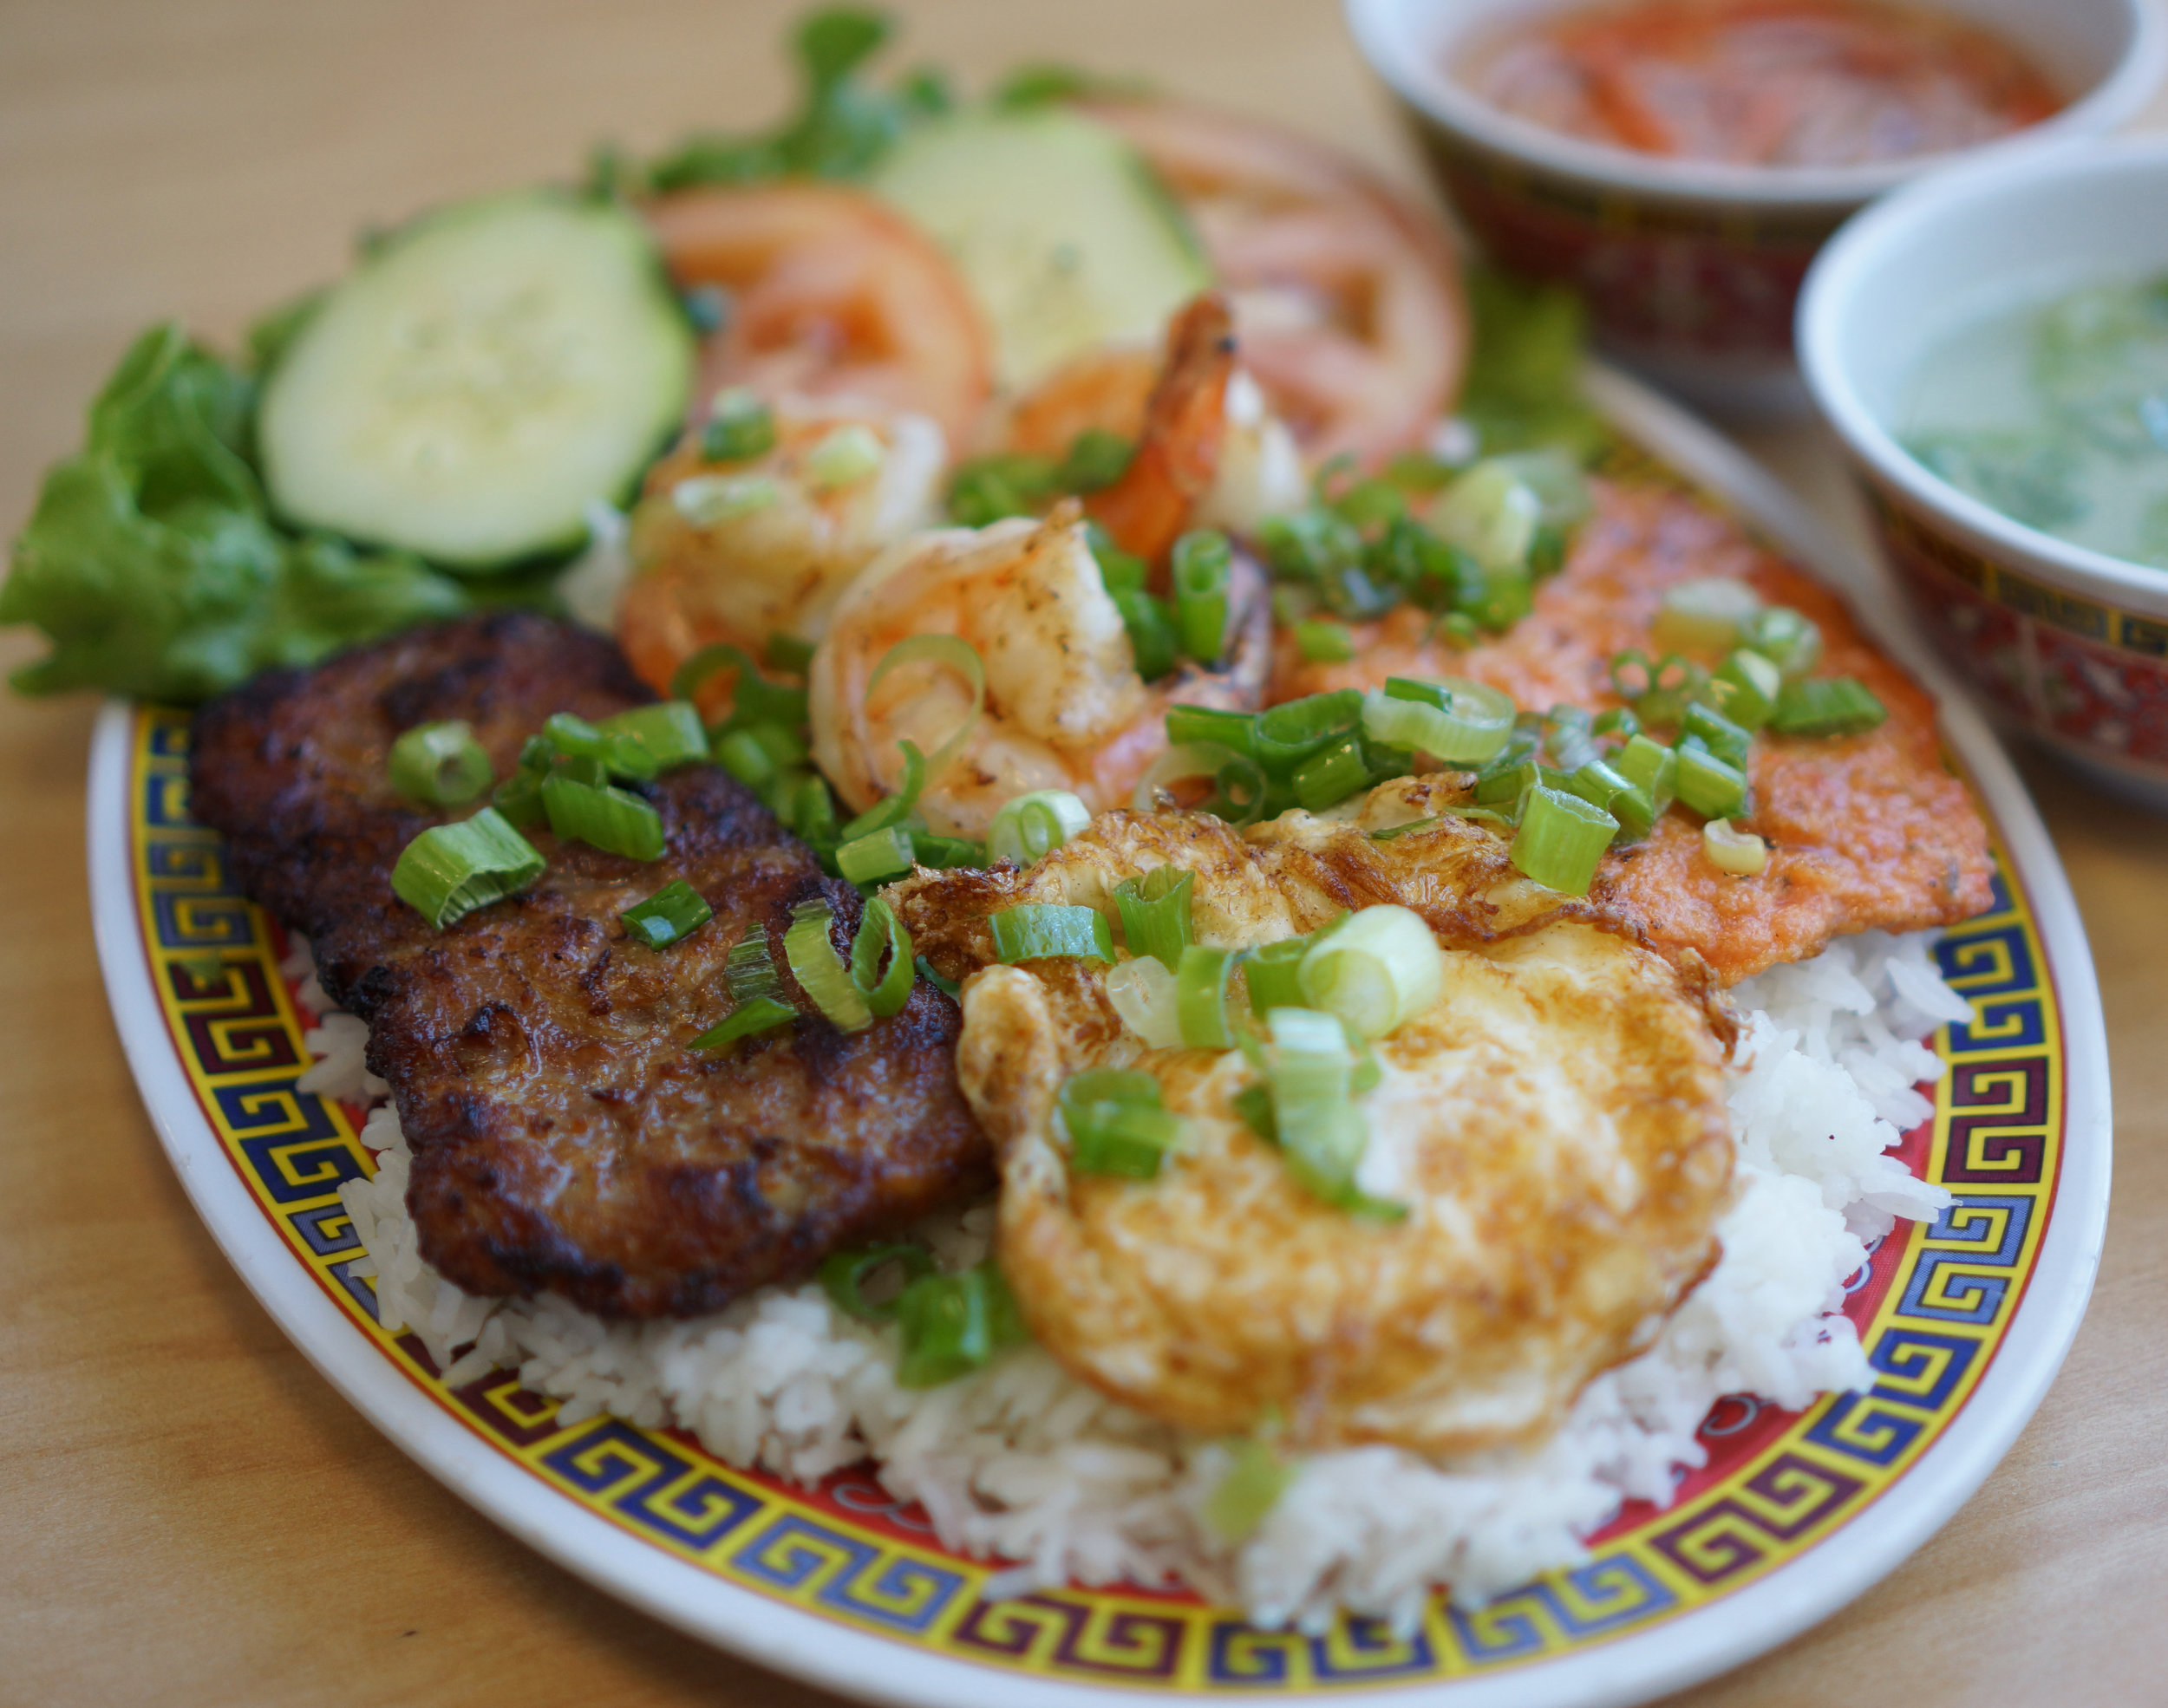 Cơm Hoài Huế - Mouthwatering rice dish combination of BBQ pork, grilled shrimps, fried egg, and grilled shrimp patty